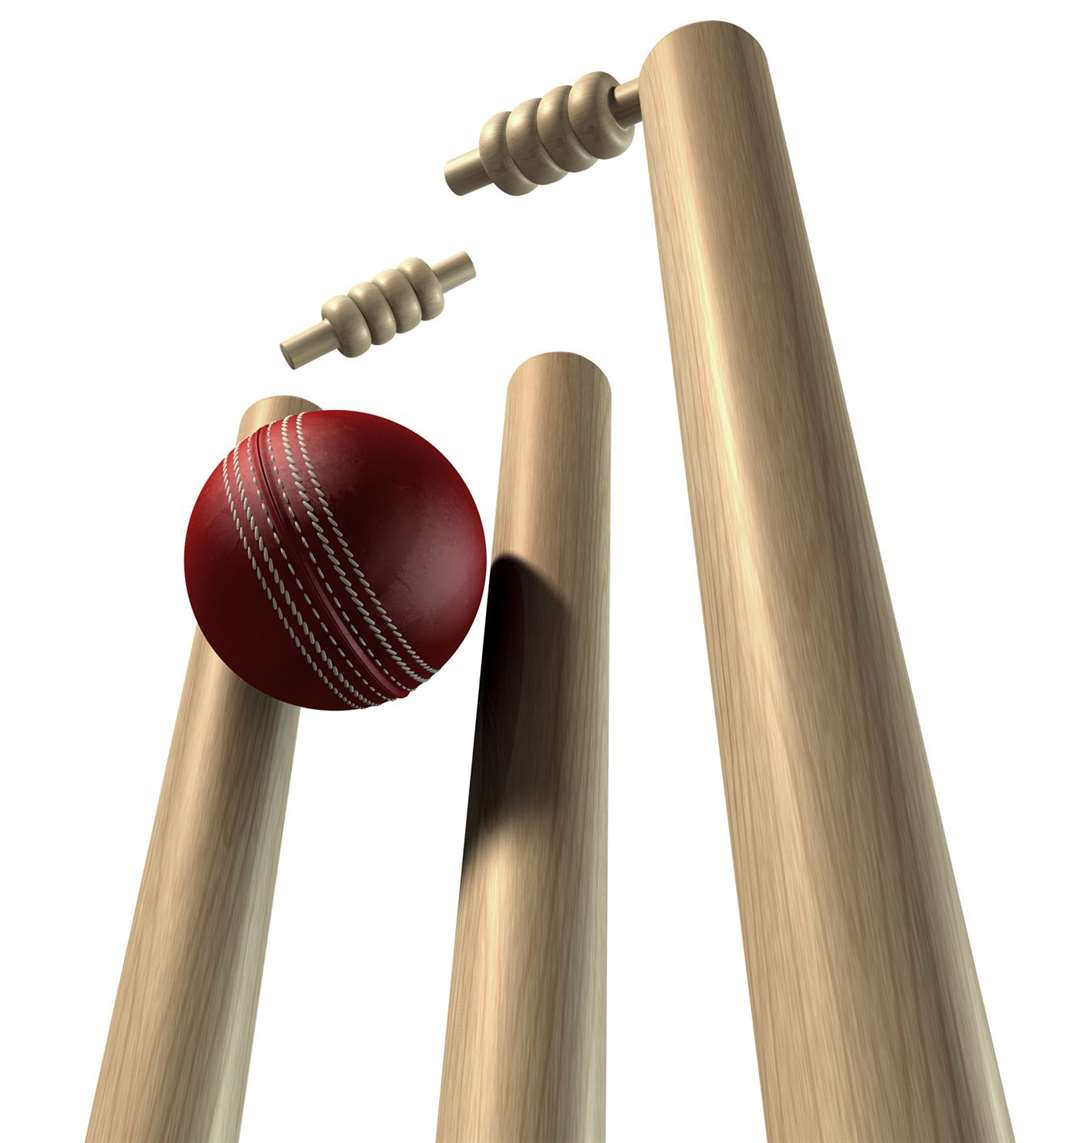 Cricket Ball Hitting Wickets Perspective Isolated (15159258)